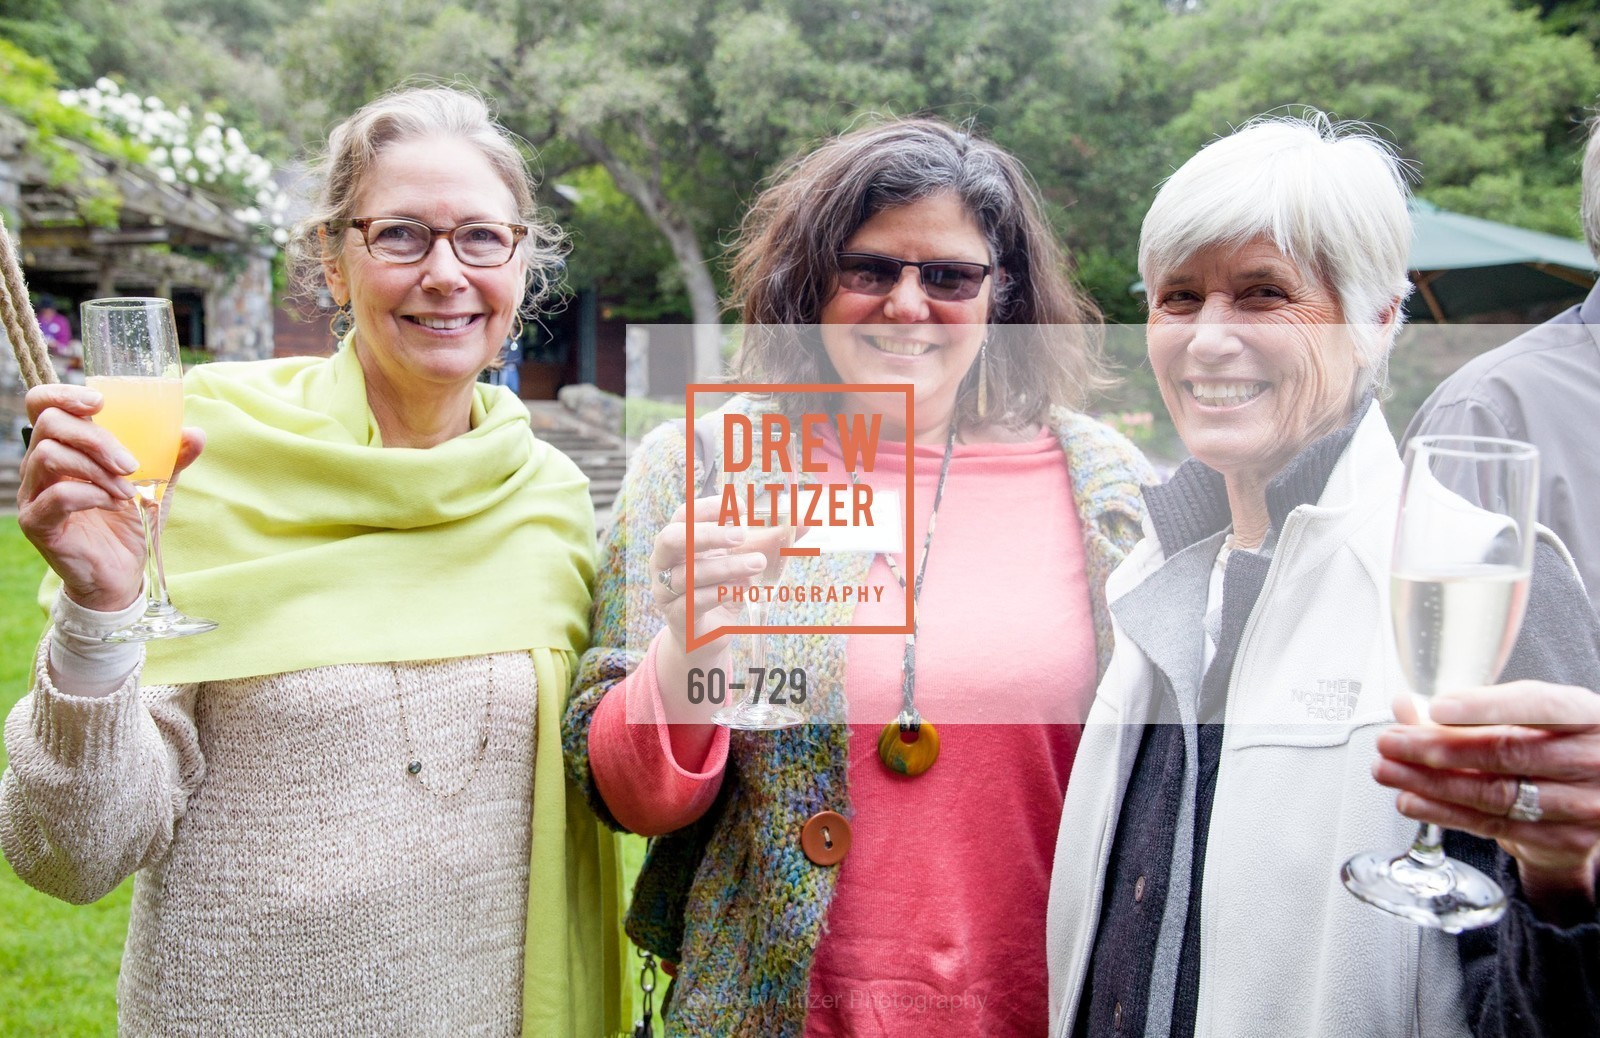 Kate Weese, Karina Nielsen, Susan Lukens, THE TRUST FOR PUBLIC LAND Luncheon Hosted by THE DREVER FAMILY FOUNDATION, US, May 14th, 2015,Drew Altizer, Drew Altizer Photography, full-service agency, private events, San Francisco photographer, photographer california